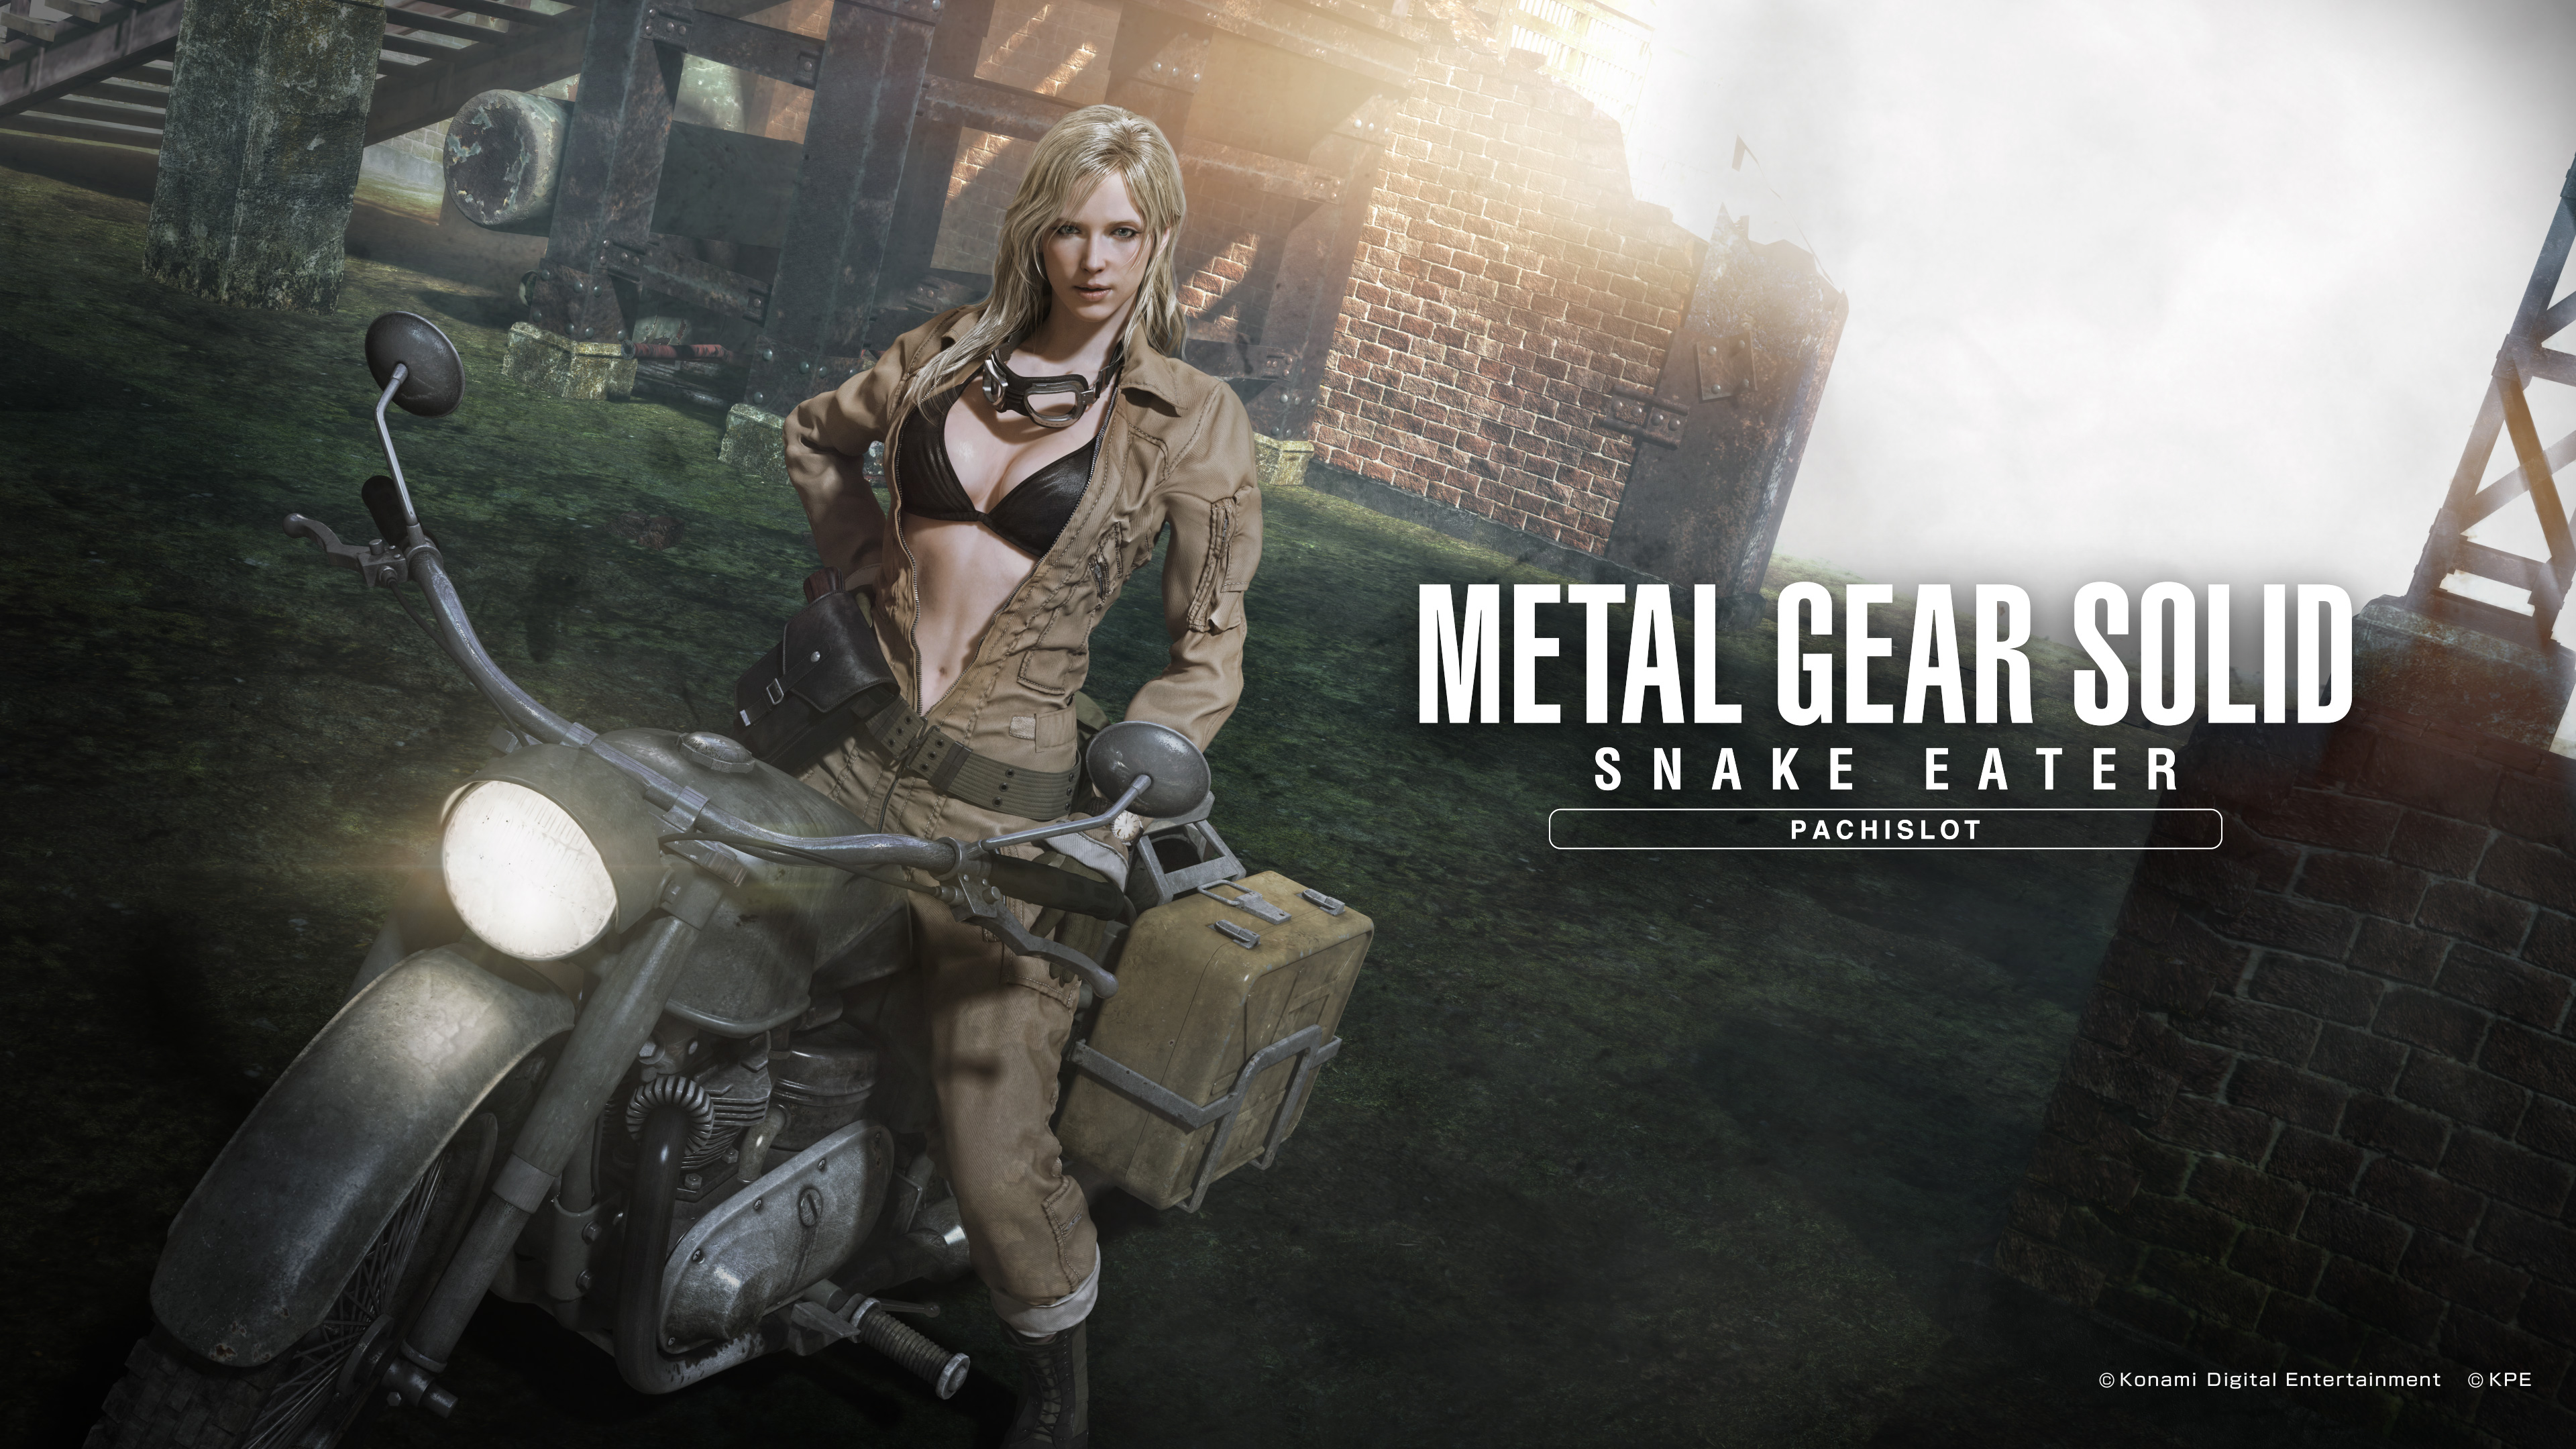 MGS-Snake-Eater-Pachislot-Wallpaper-PC-4